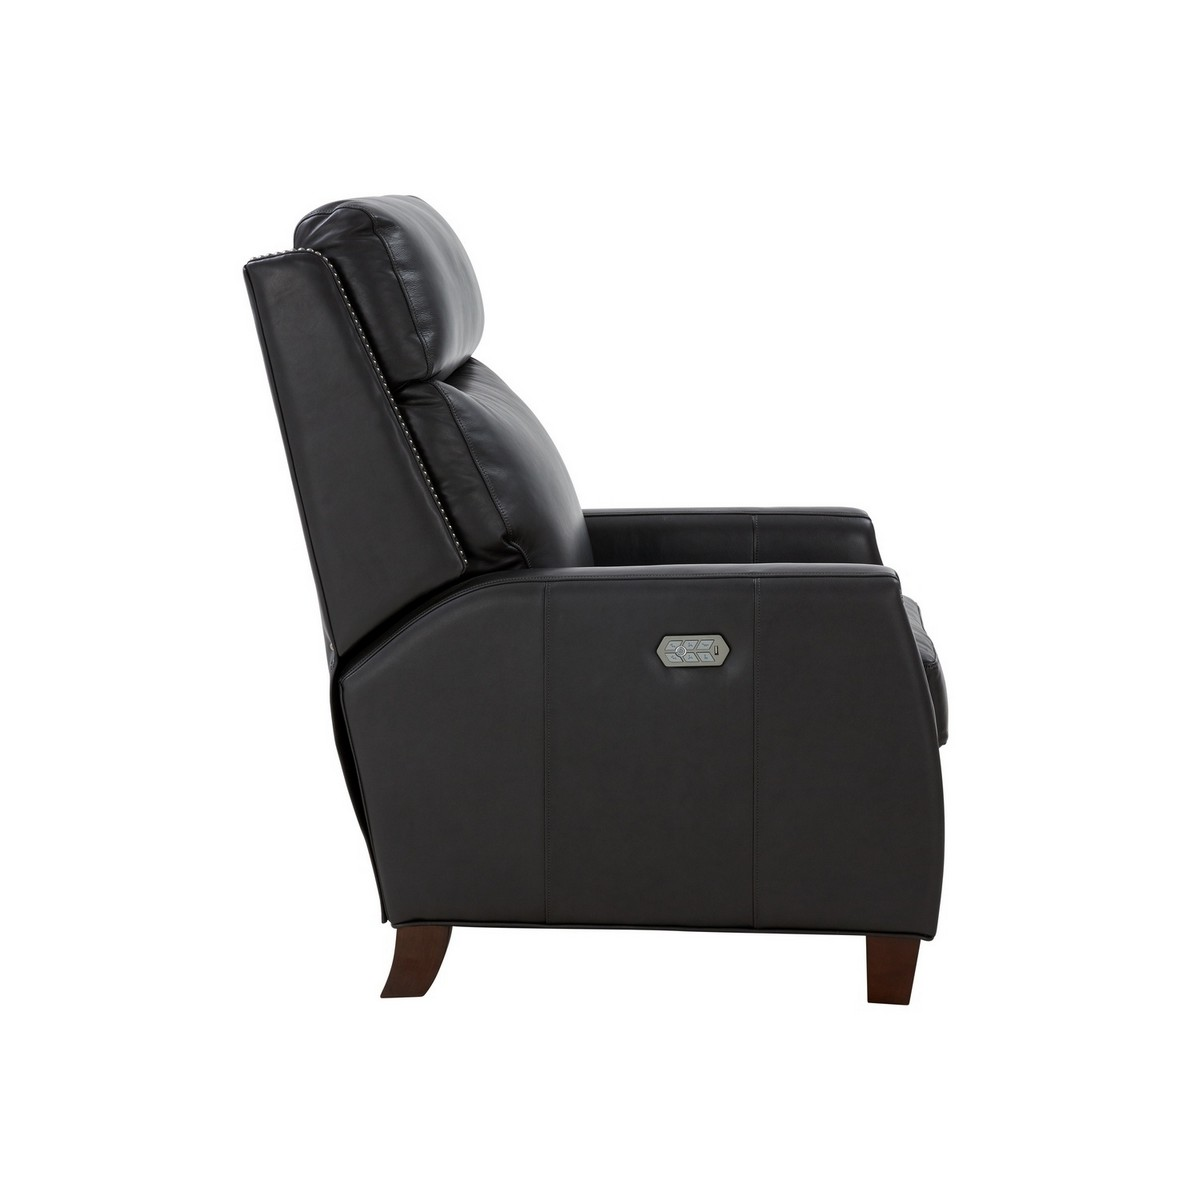 Barcalounger Anaheim Big and Tall Power Recliner Chair with Power Head Rest and Lumbar - Shoreham Gray/All Leather